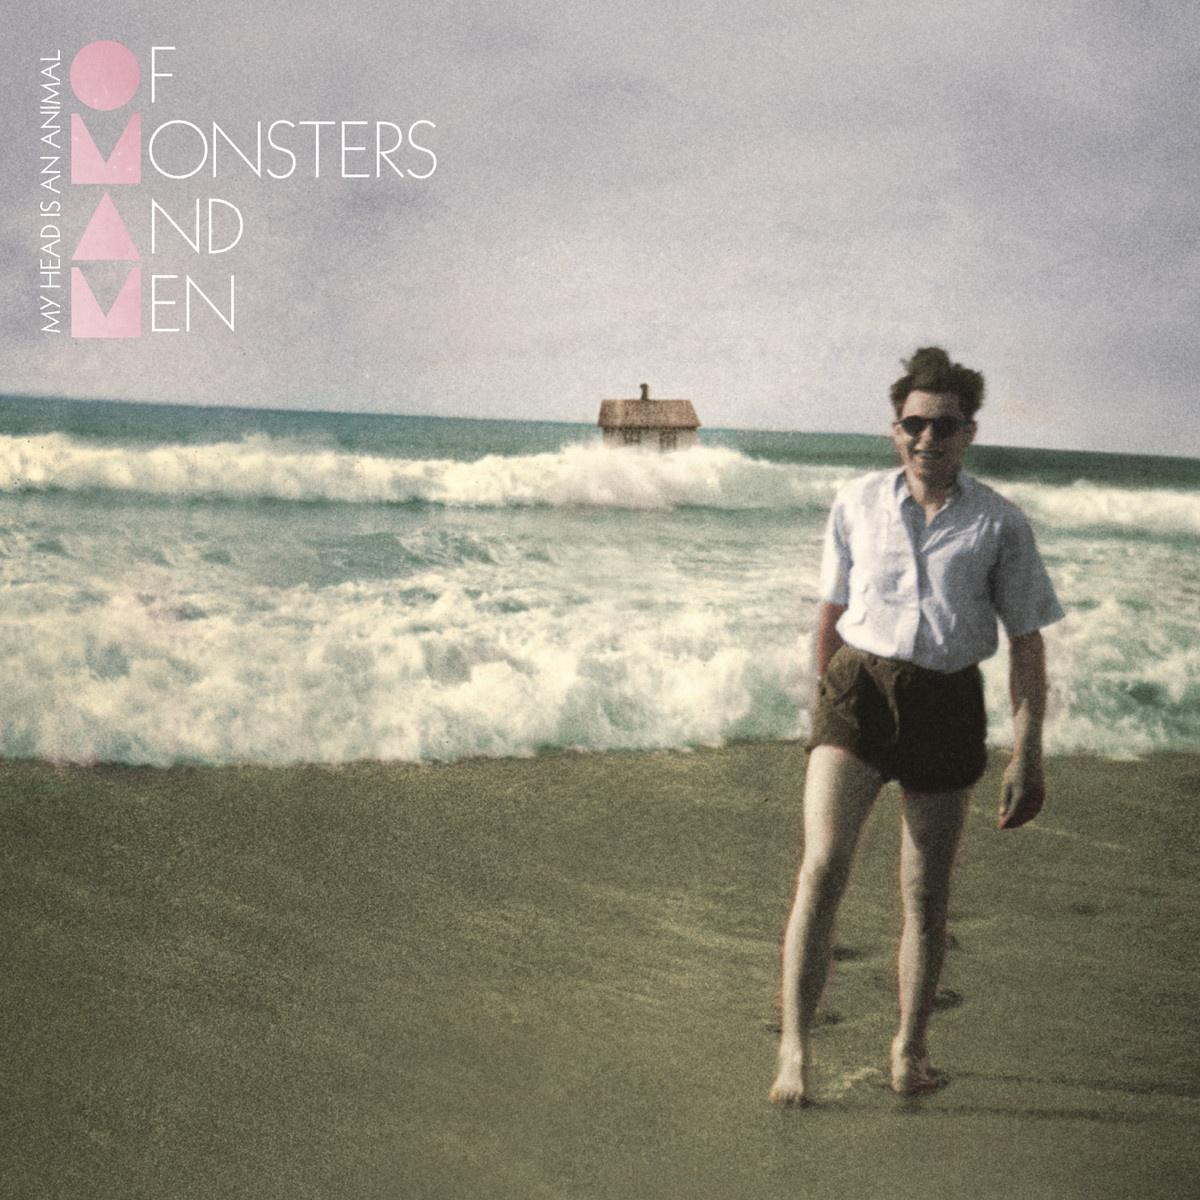 Of Monsters And Men - Little Talks 爱民谣